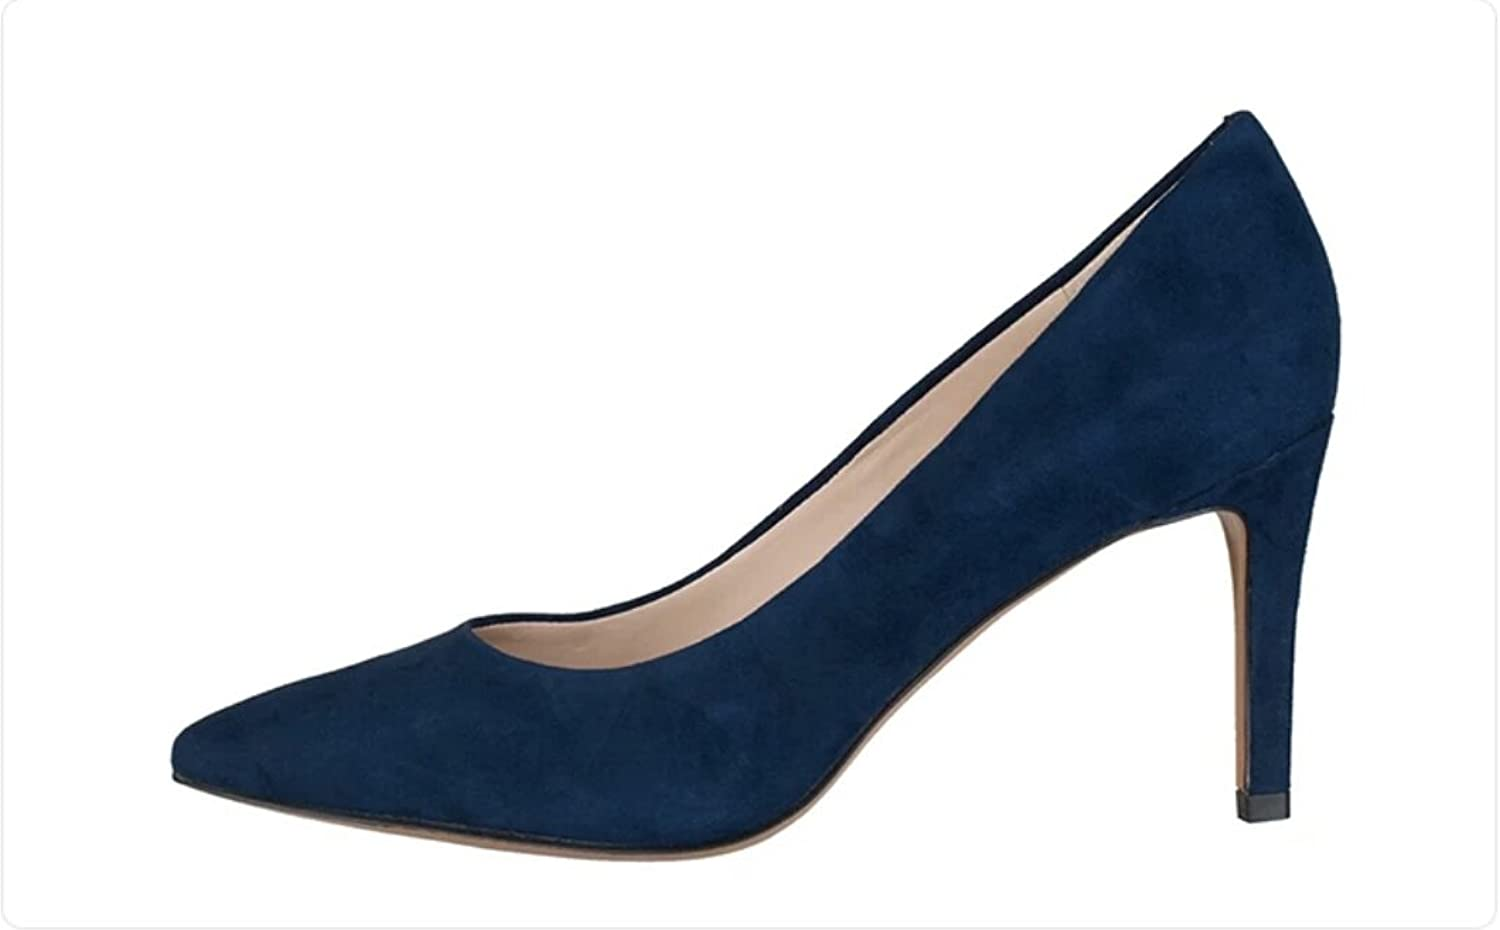 Nansay Women's Stiletto Mid Heels Big Size Pumps Women's Suede shoes Solid Pointed Toe Pumps for Dress